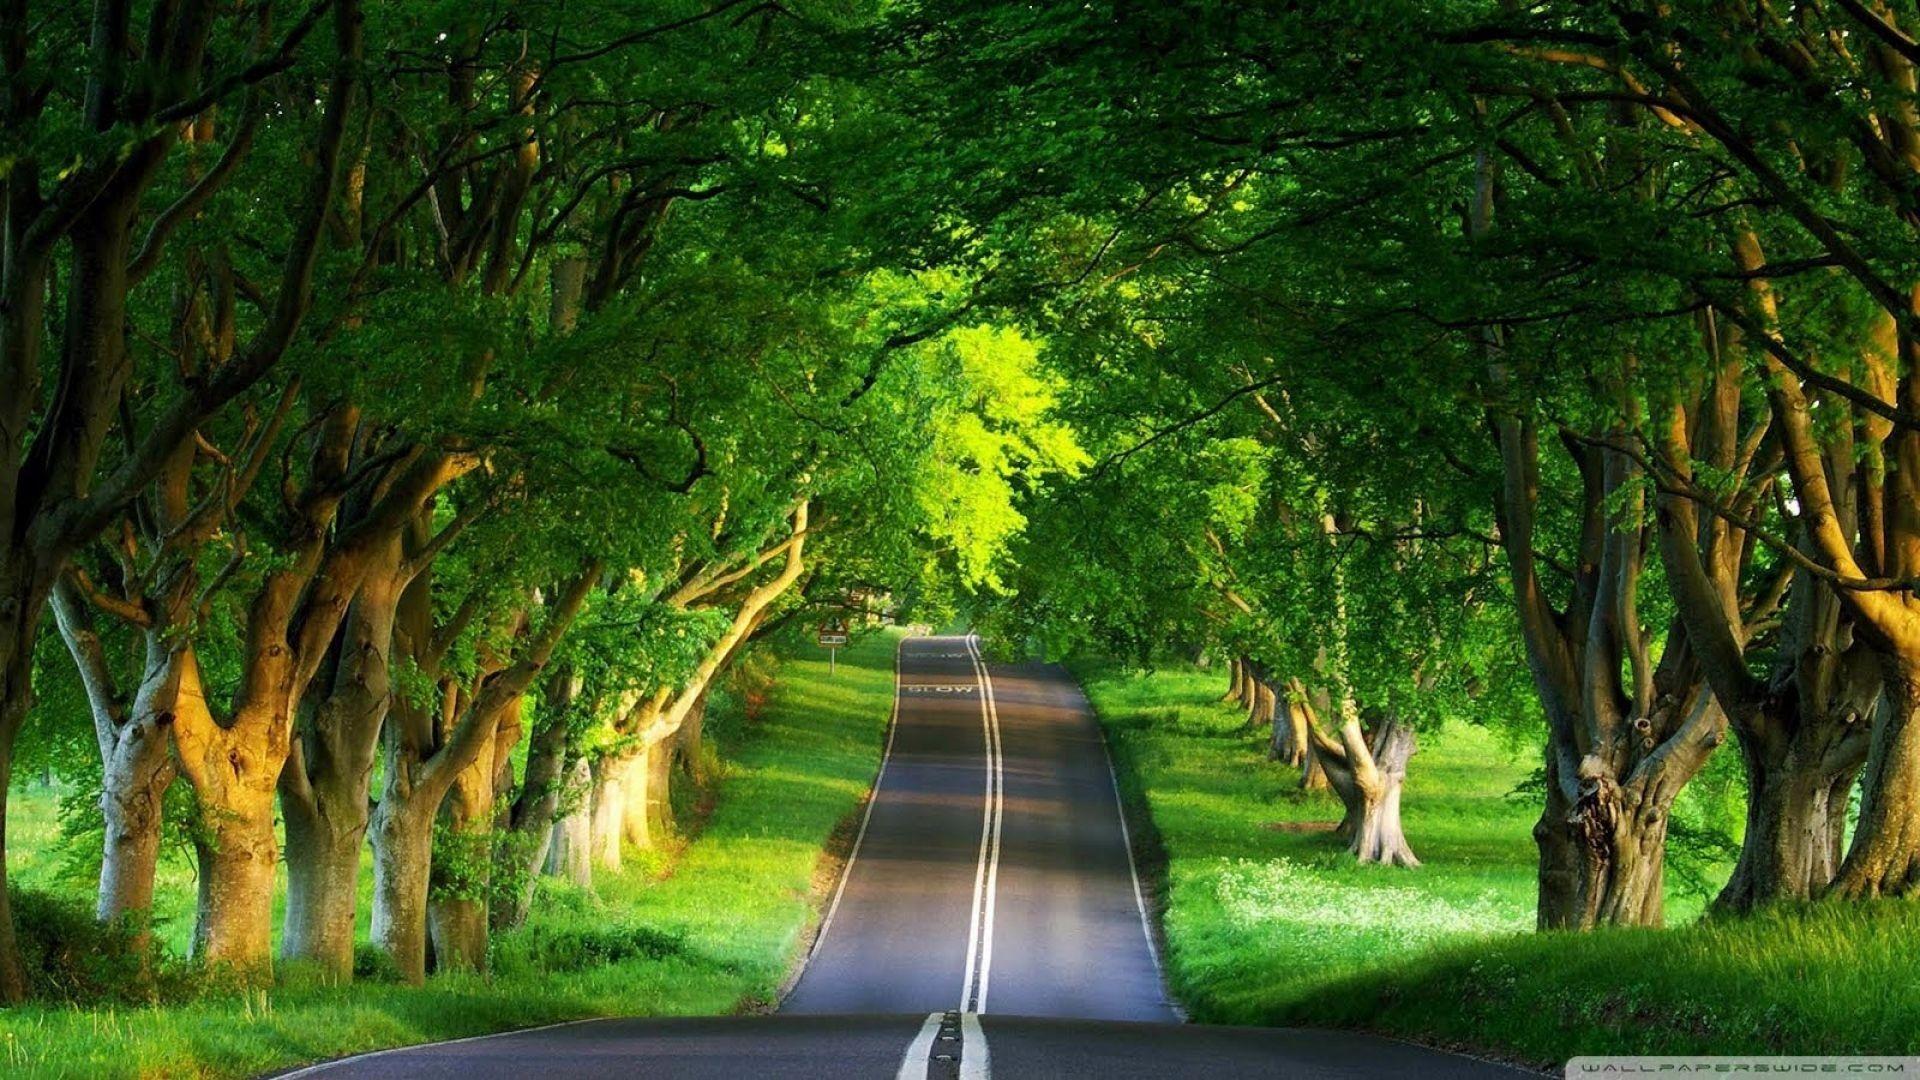 Awesome Tree And Road Wallpaper Green Nature Wallpaper Best Nature Wallpapers Nature Desktop Wallpaper